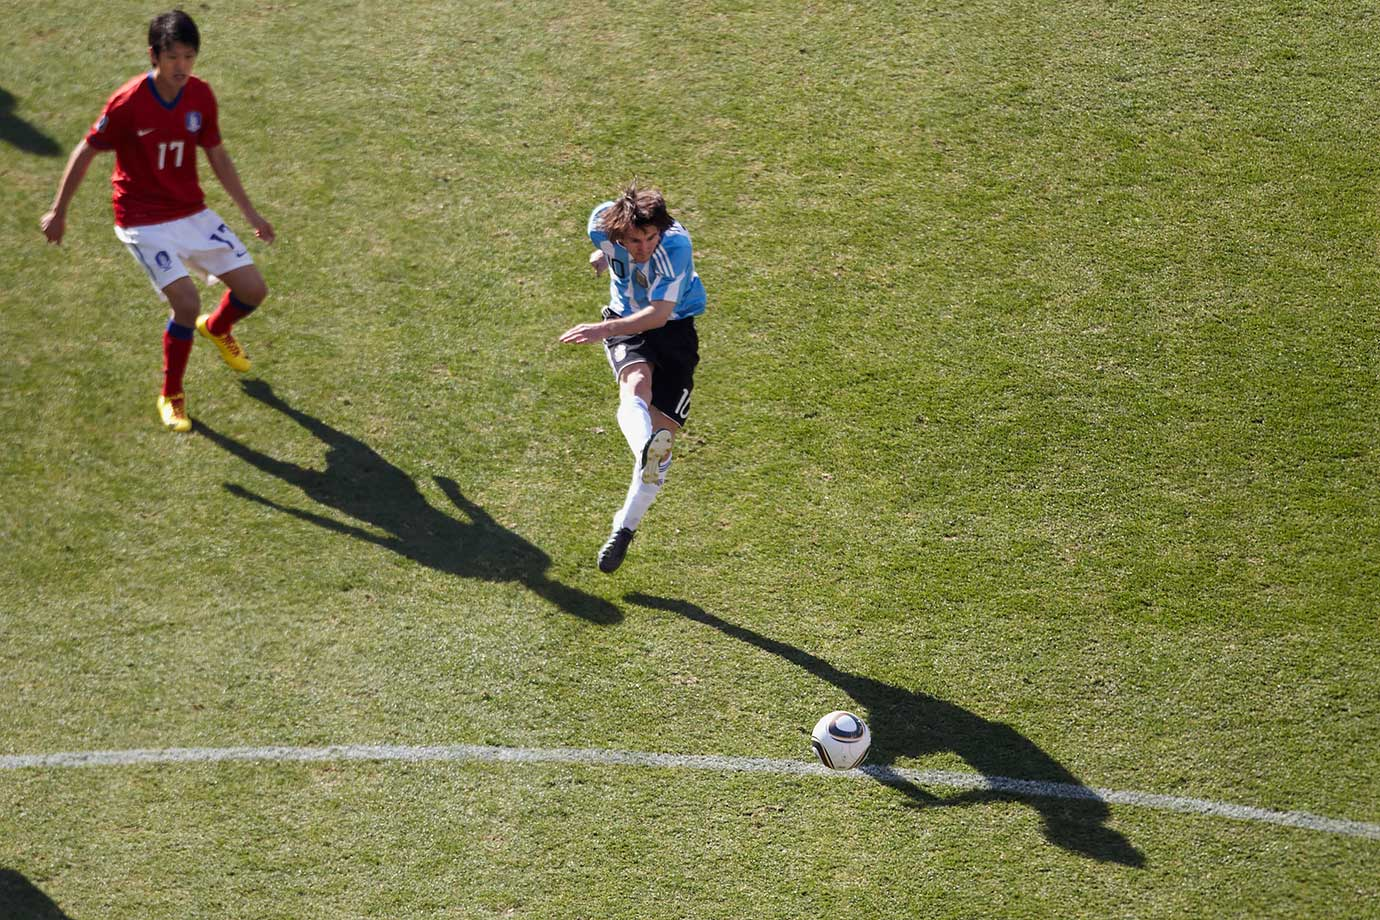 Argentina's Lionel Messi plays the ball during the FIFA World Cup Group B match against South Korea on June 17, 2010 at Soccer City Stadium in Johannesburg, South Africa.